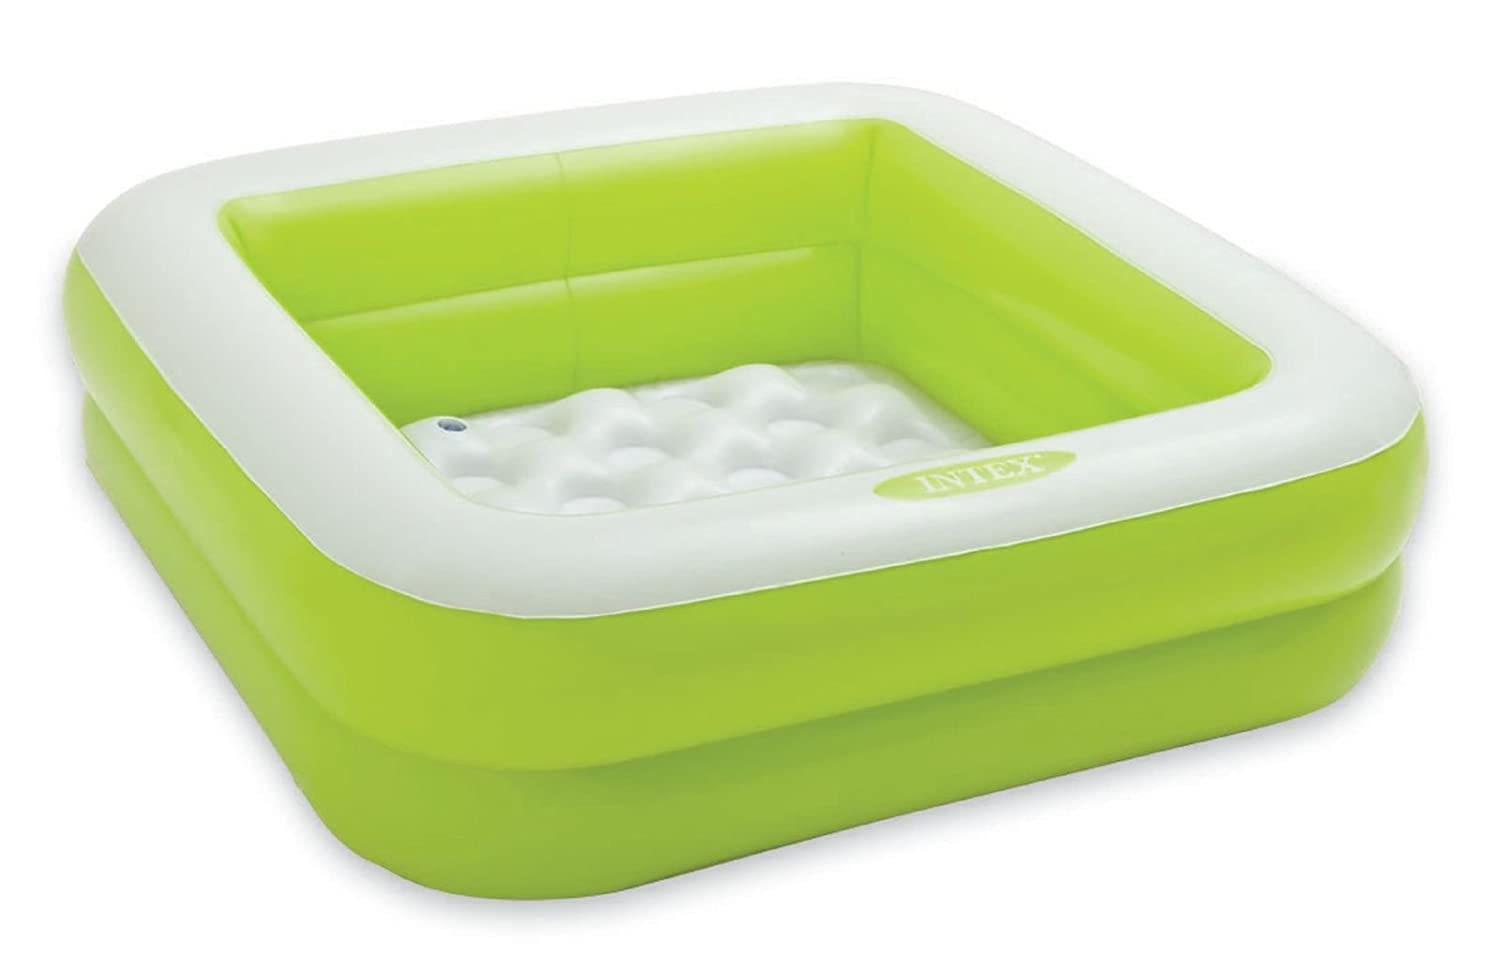 "Intex Inflatable 15 Gallon Kids Baby Pool, Green, 33.5"" x 33.5"" x 9"""